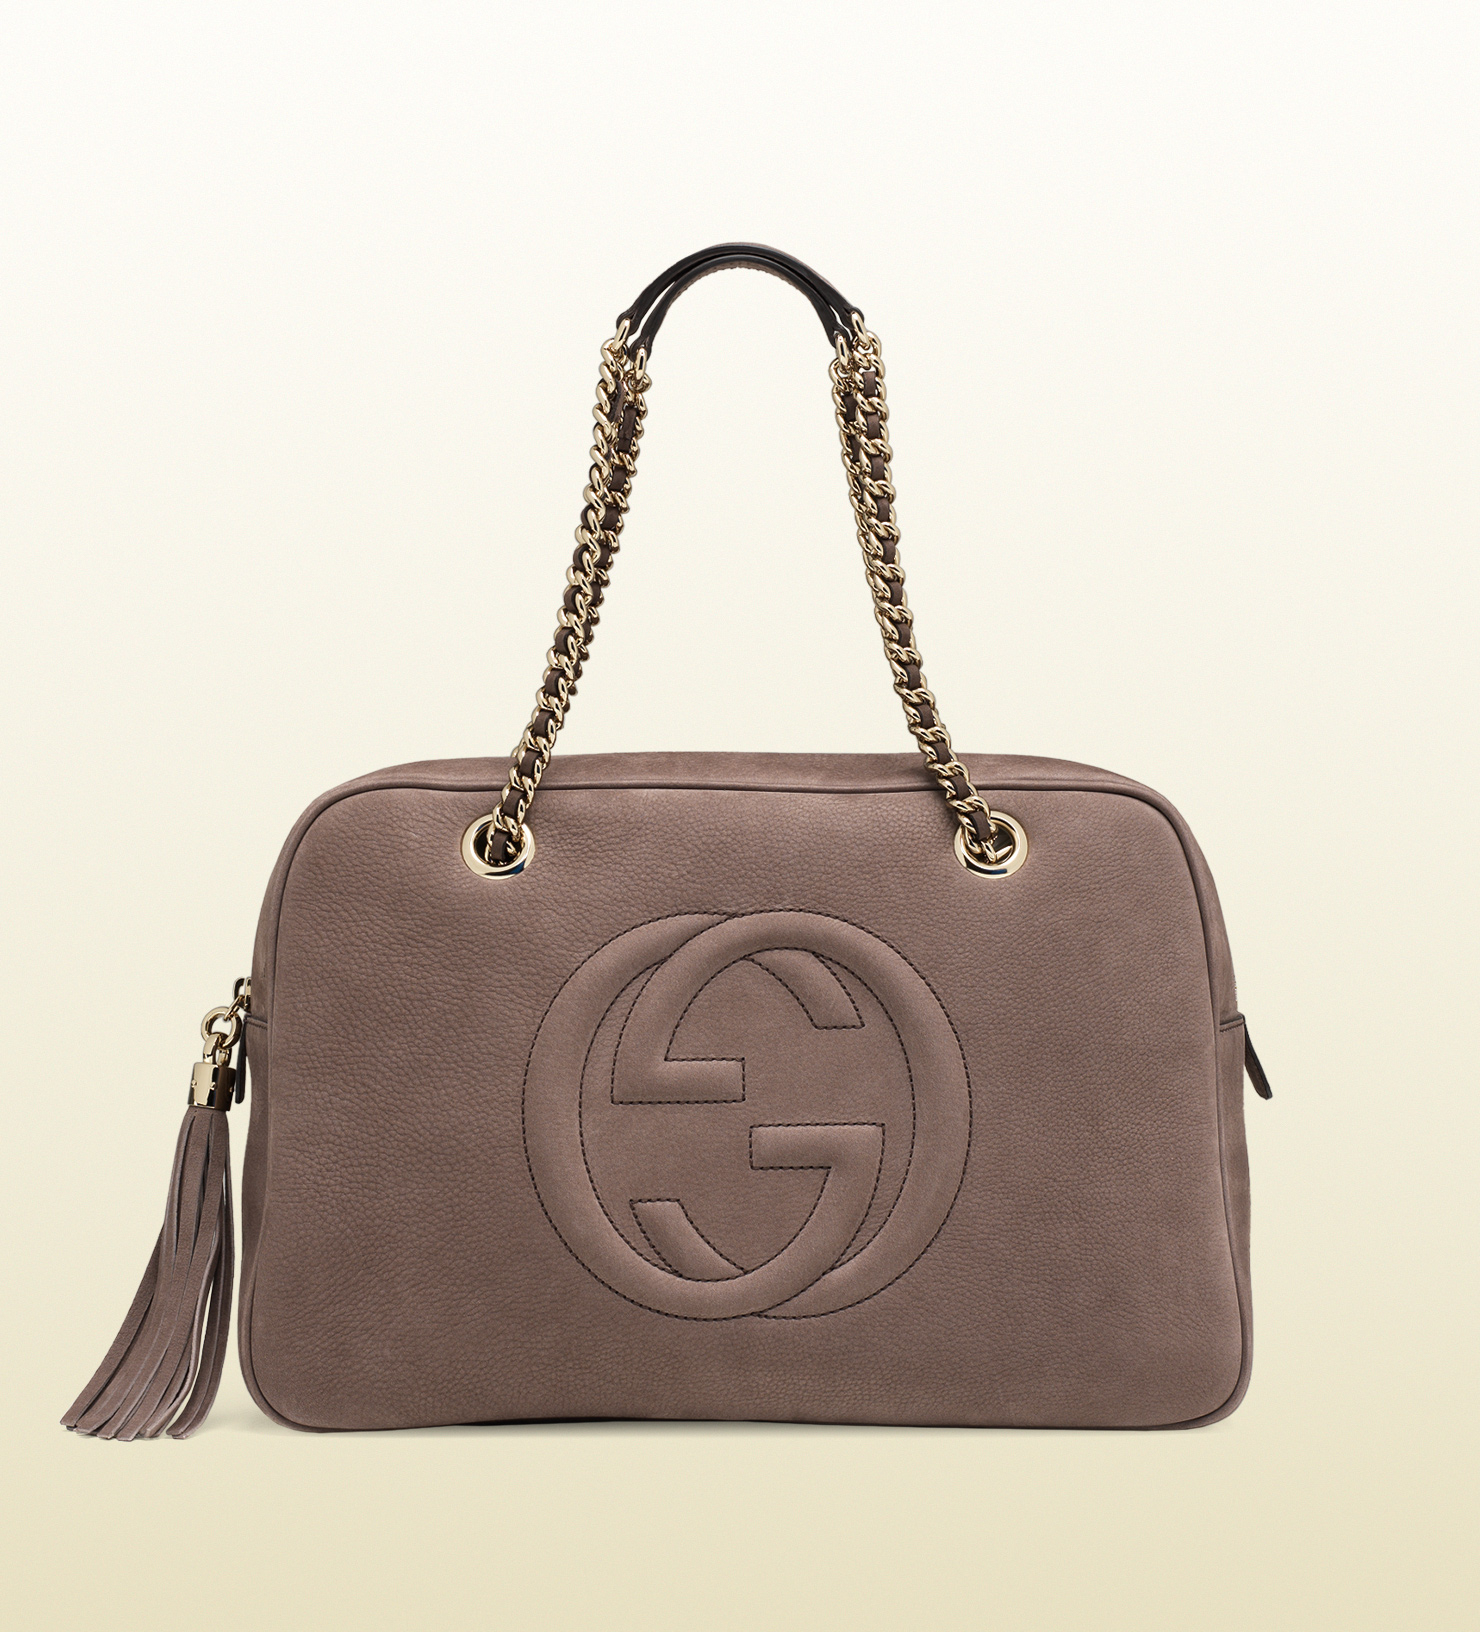 116a1831da6e Lyst - Gucci Soho Nubuck Leather Chain Shoulder Bag in Gray